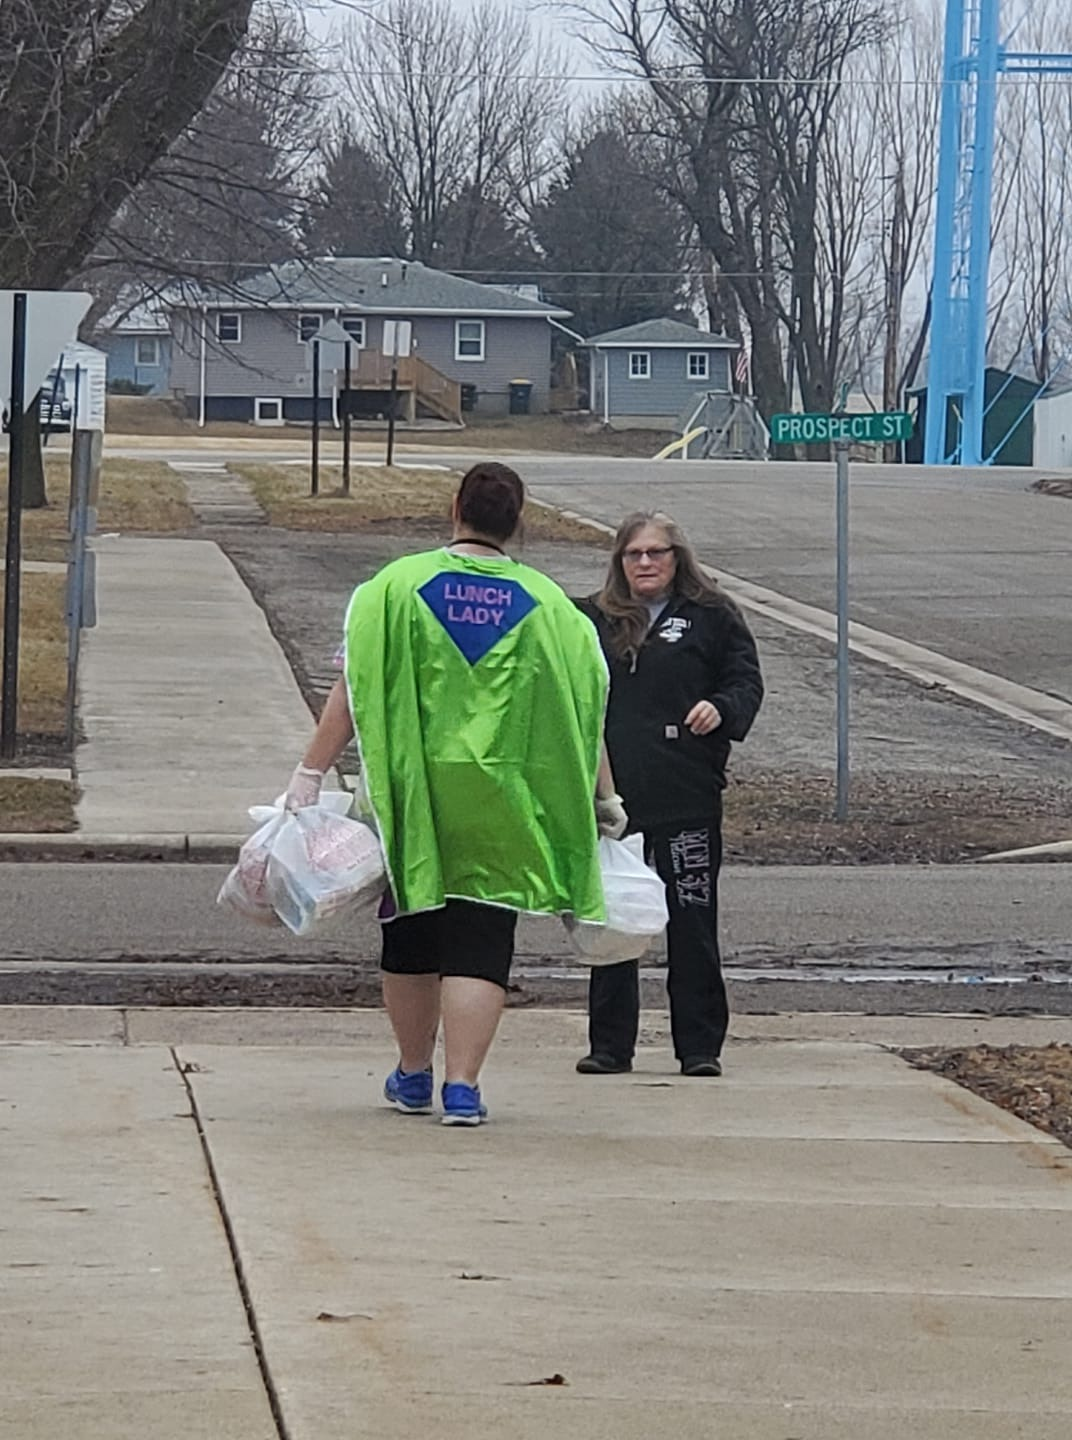 Heroic lunch lady delivering food | Kacie Micken Schafer from Milroy, Minnesota